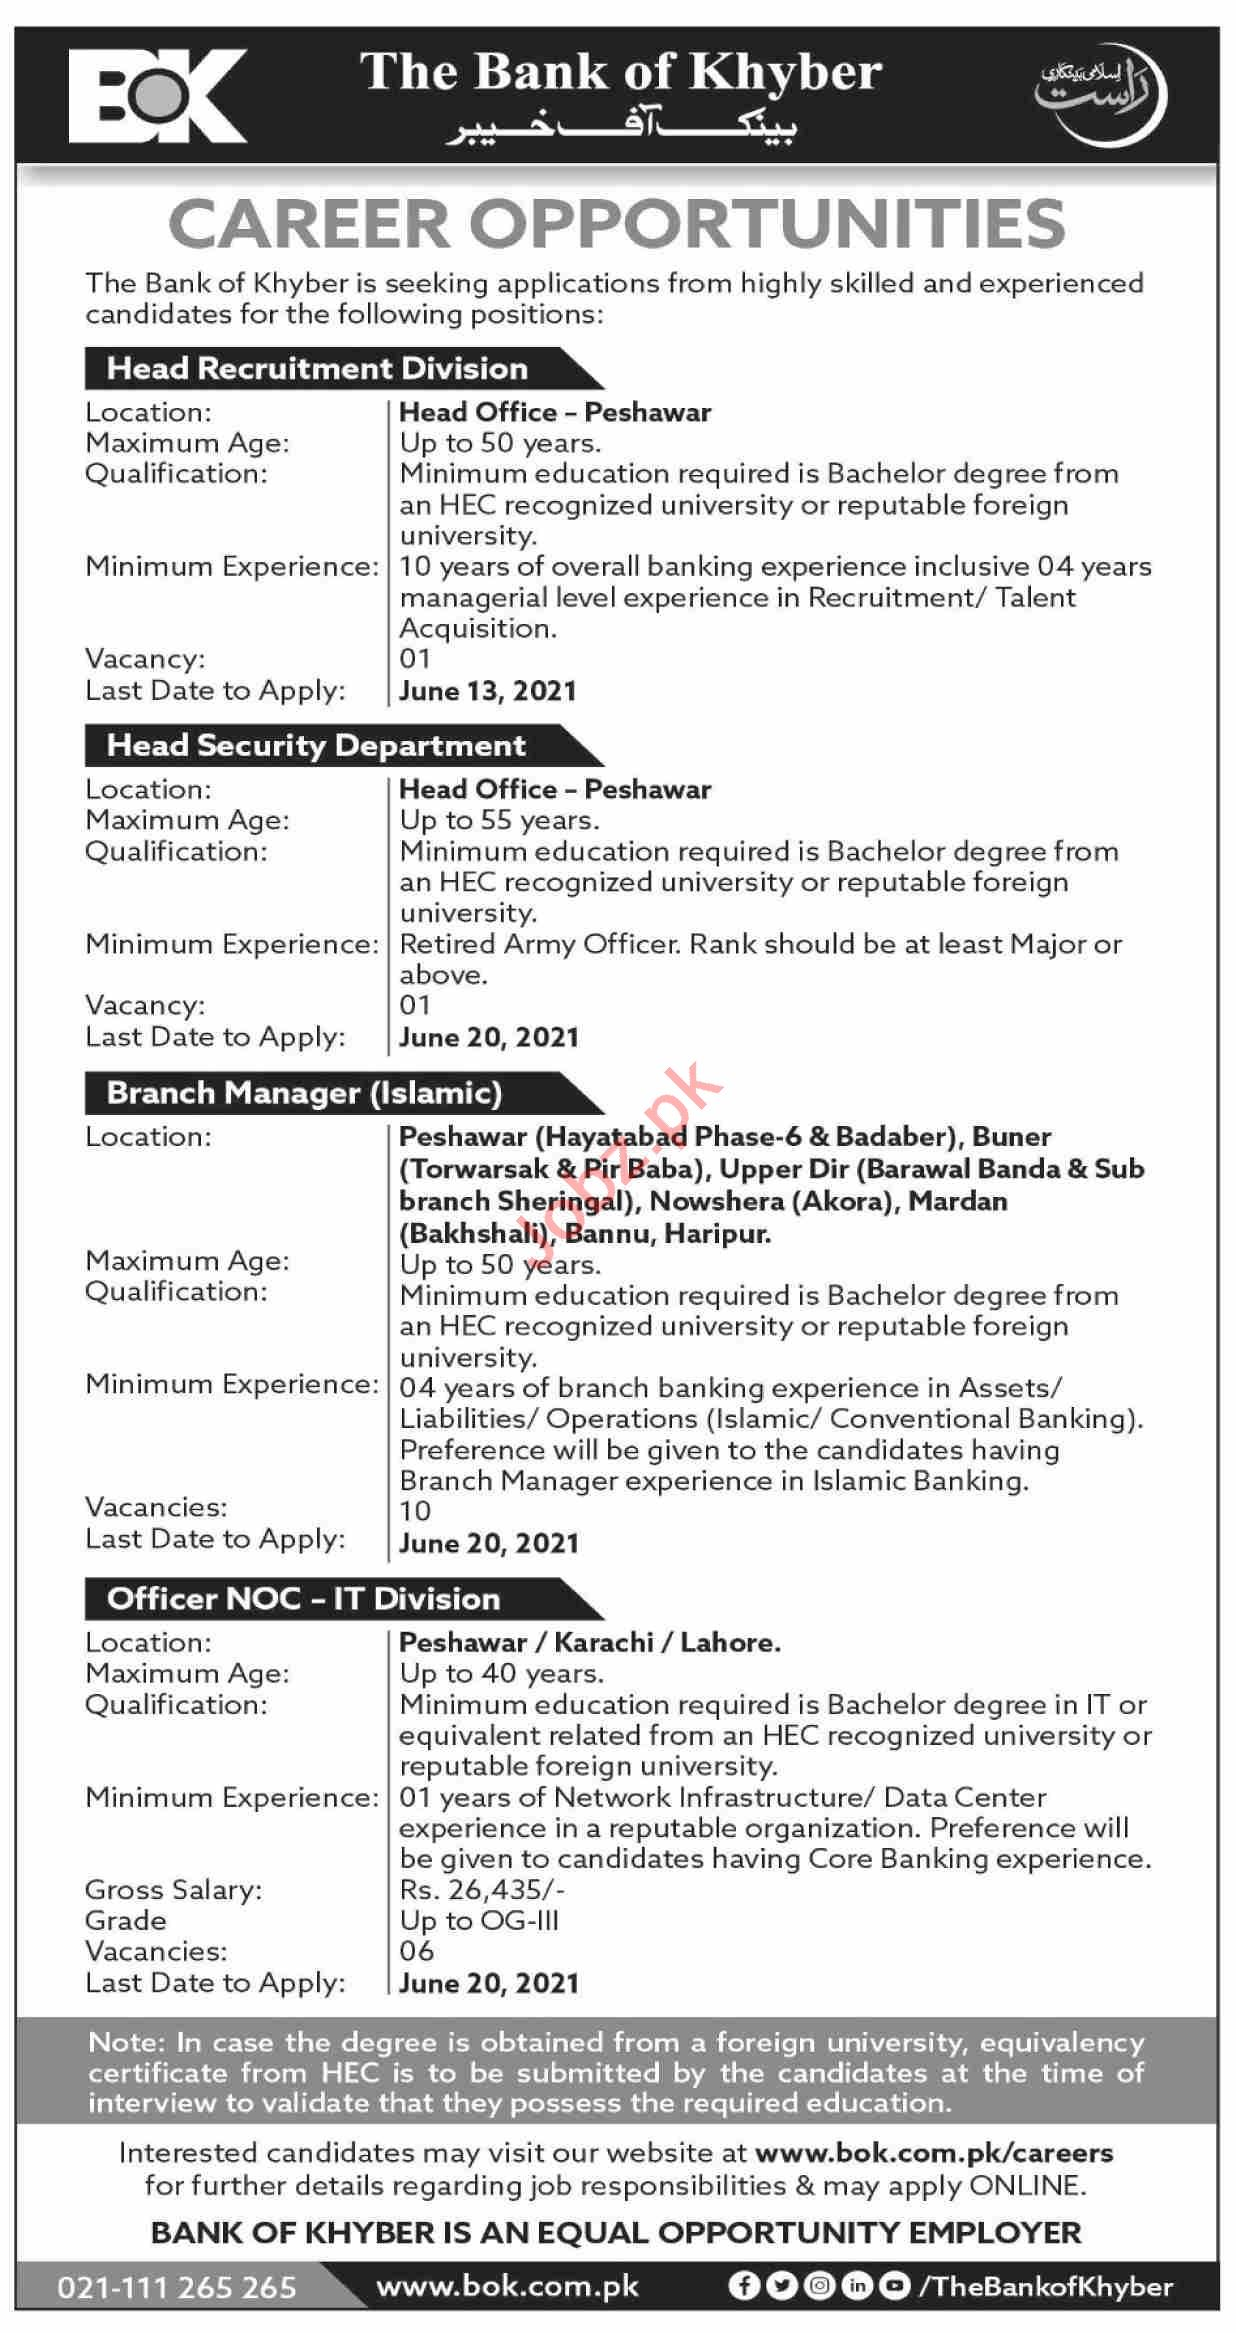 Bank of Khyber BOK Jobs 2021 for Head Recruitment Division